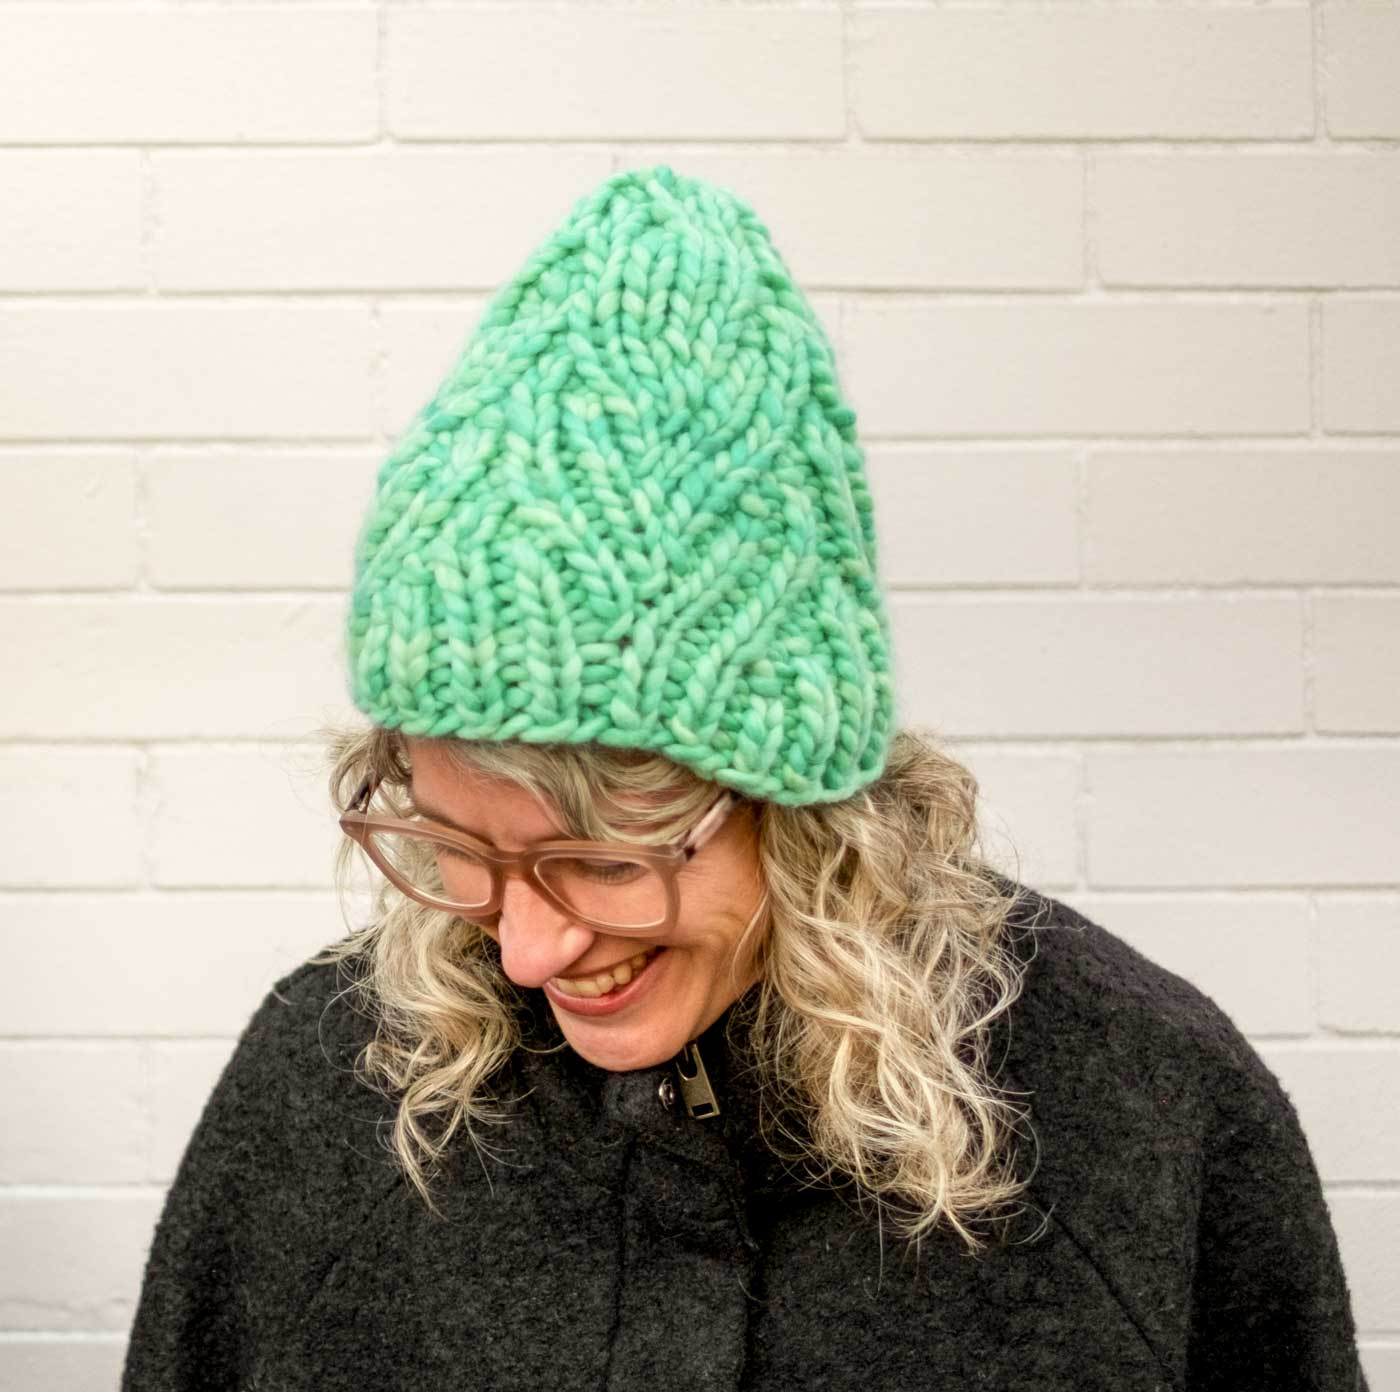 Jaime wearing her mint Neighborhood Holiday Hat